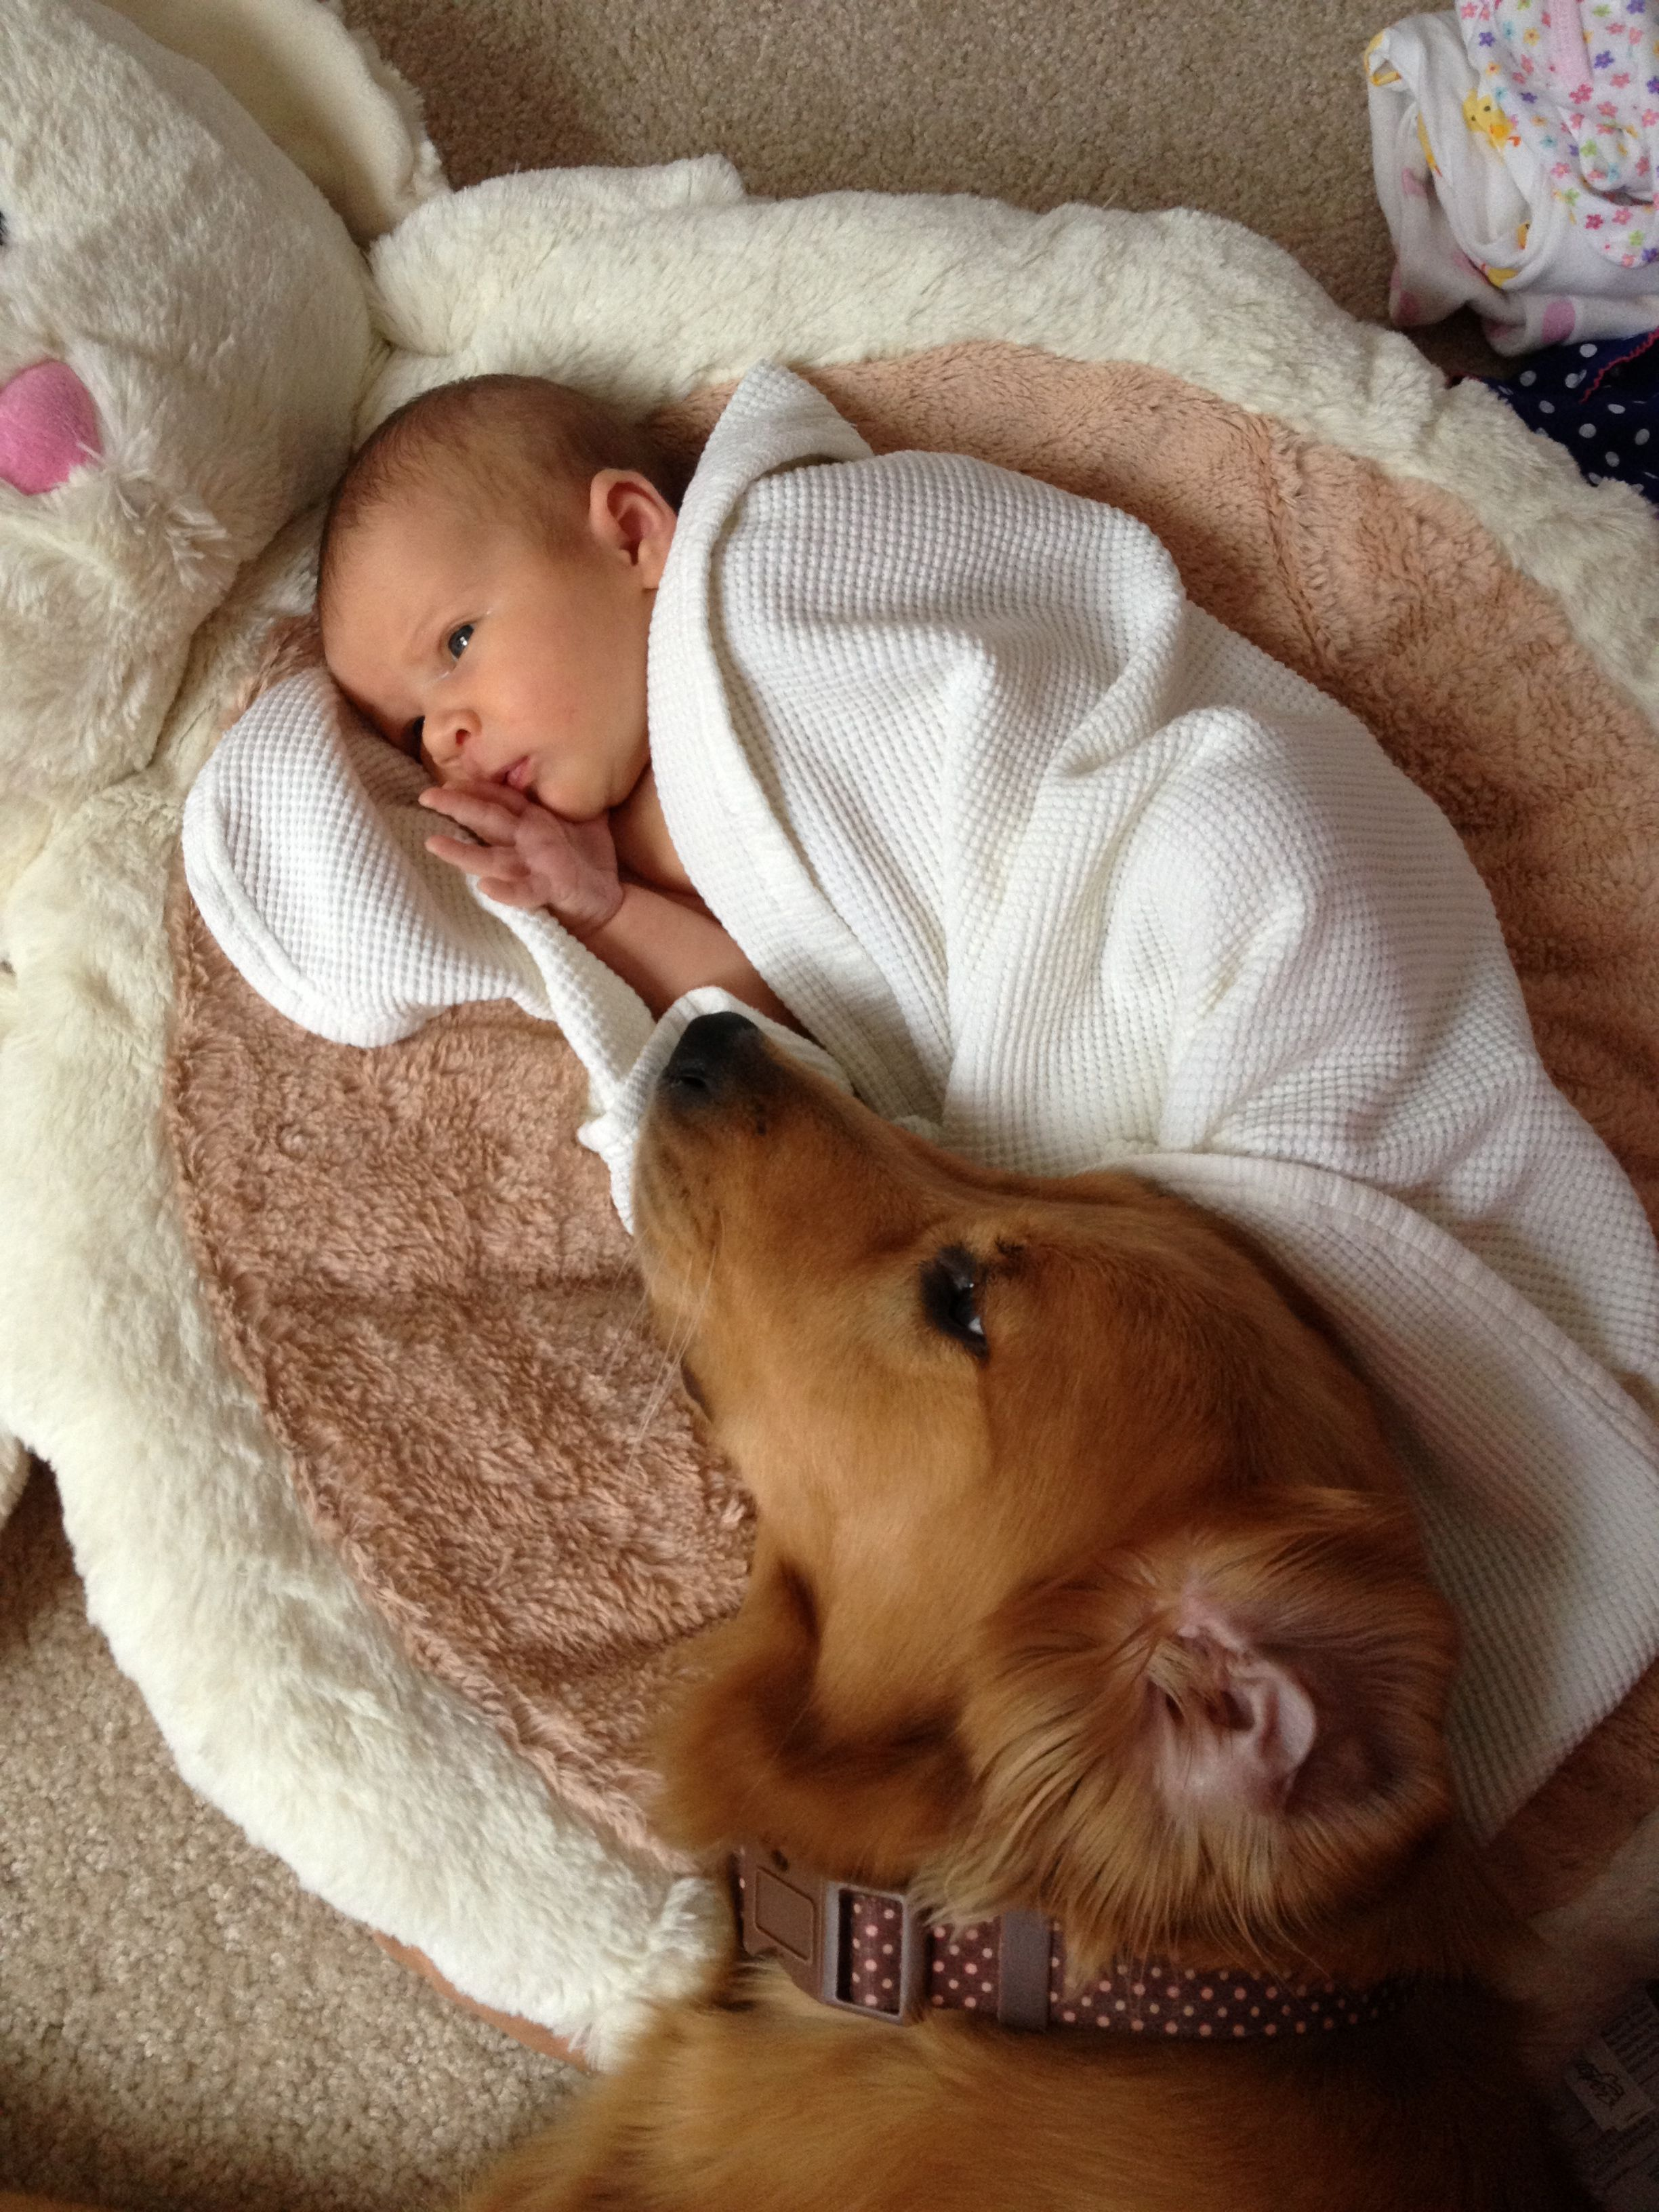 Molli Our Golden Retriever Was Loving On Our Newborn Baby Girl